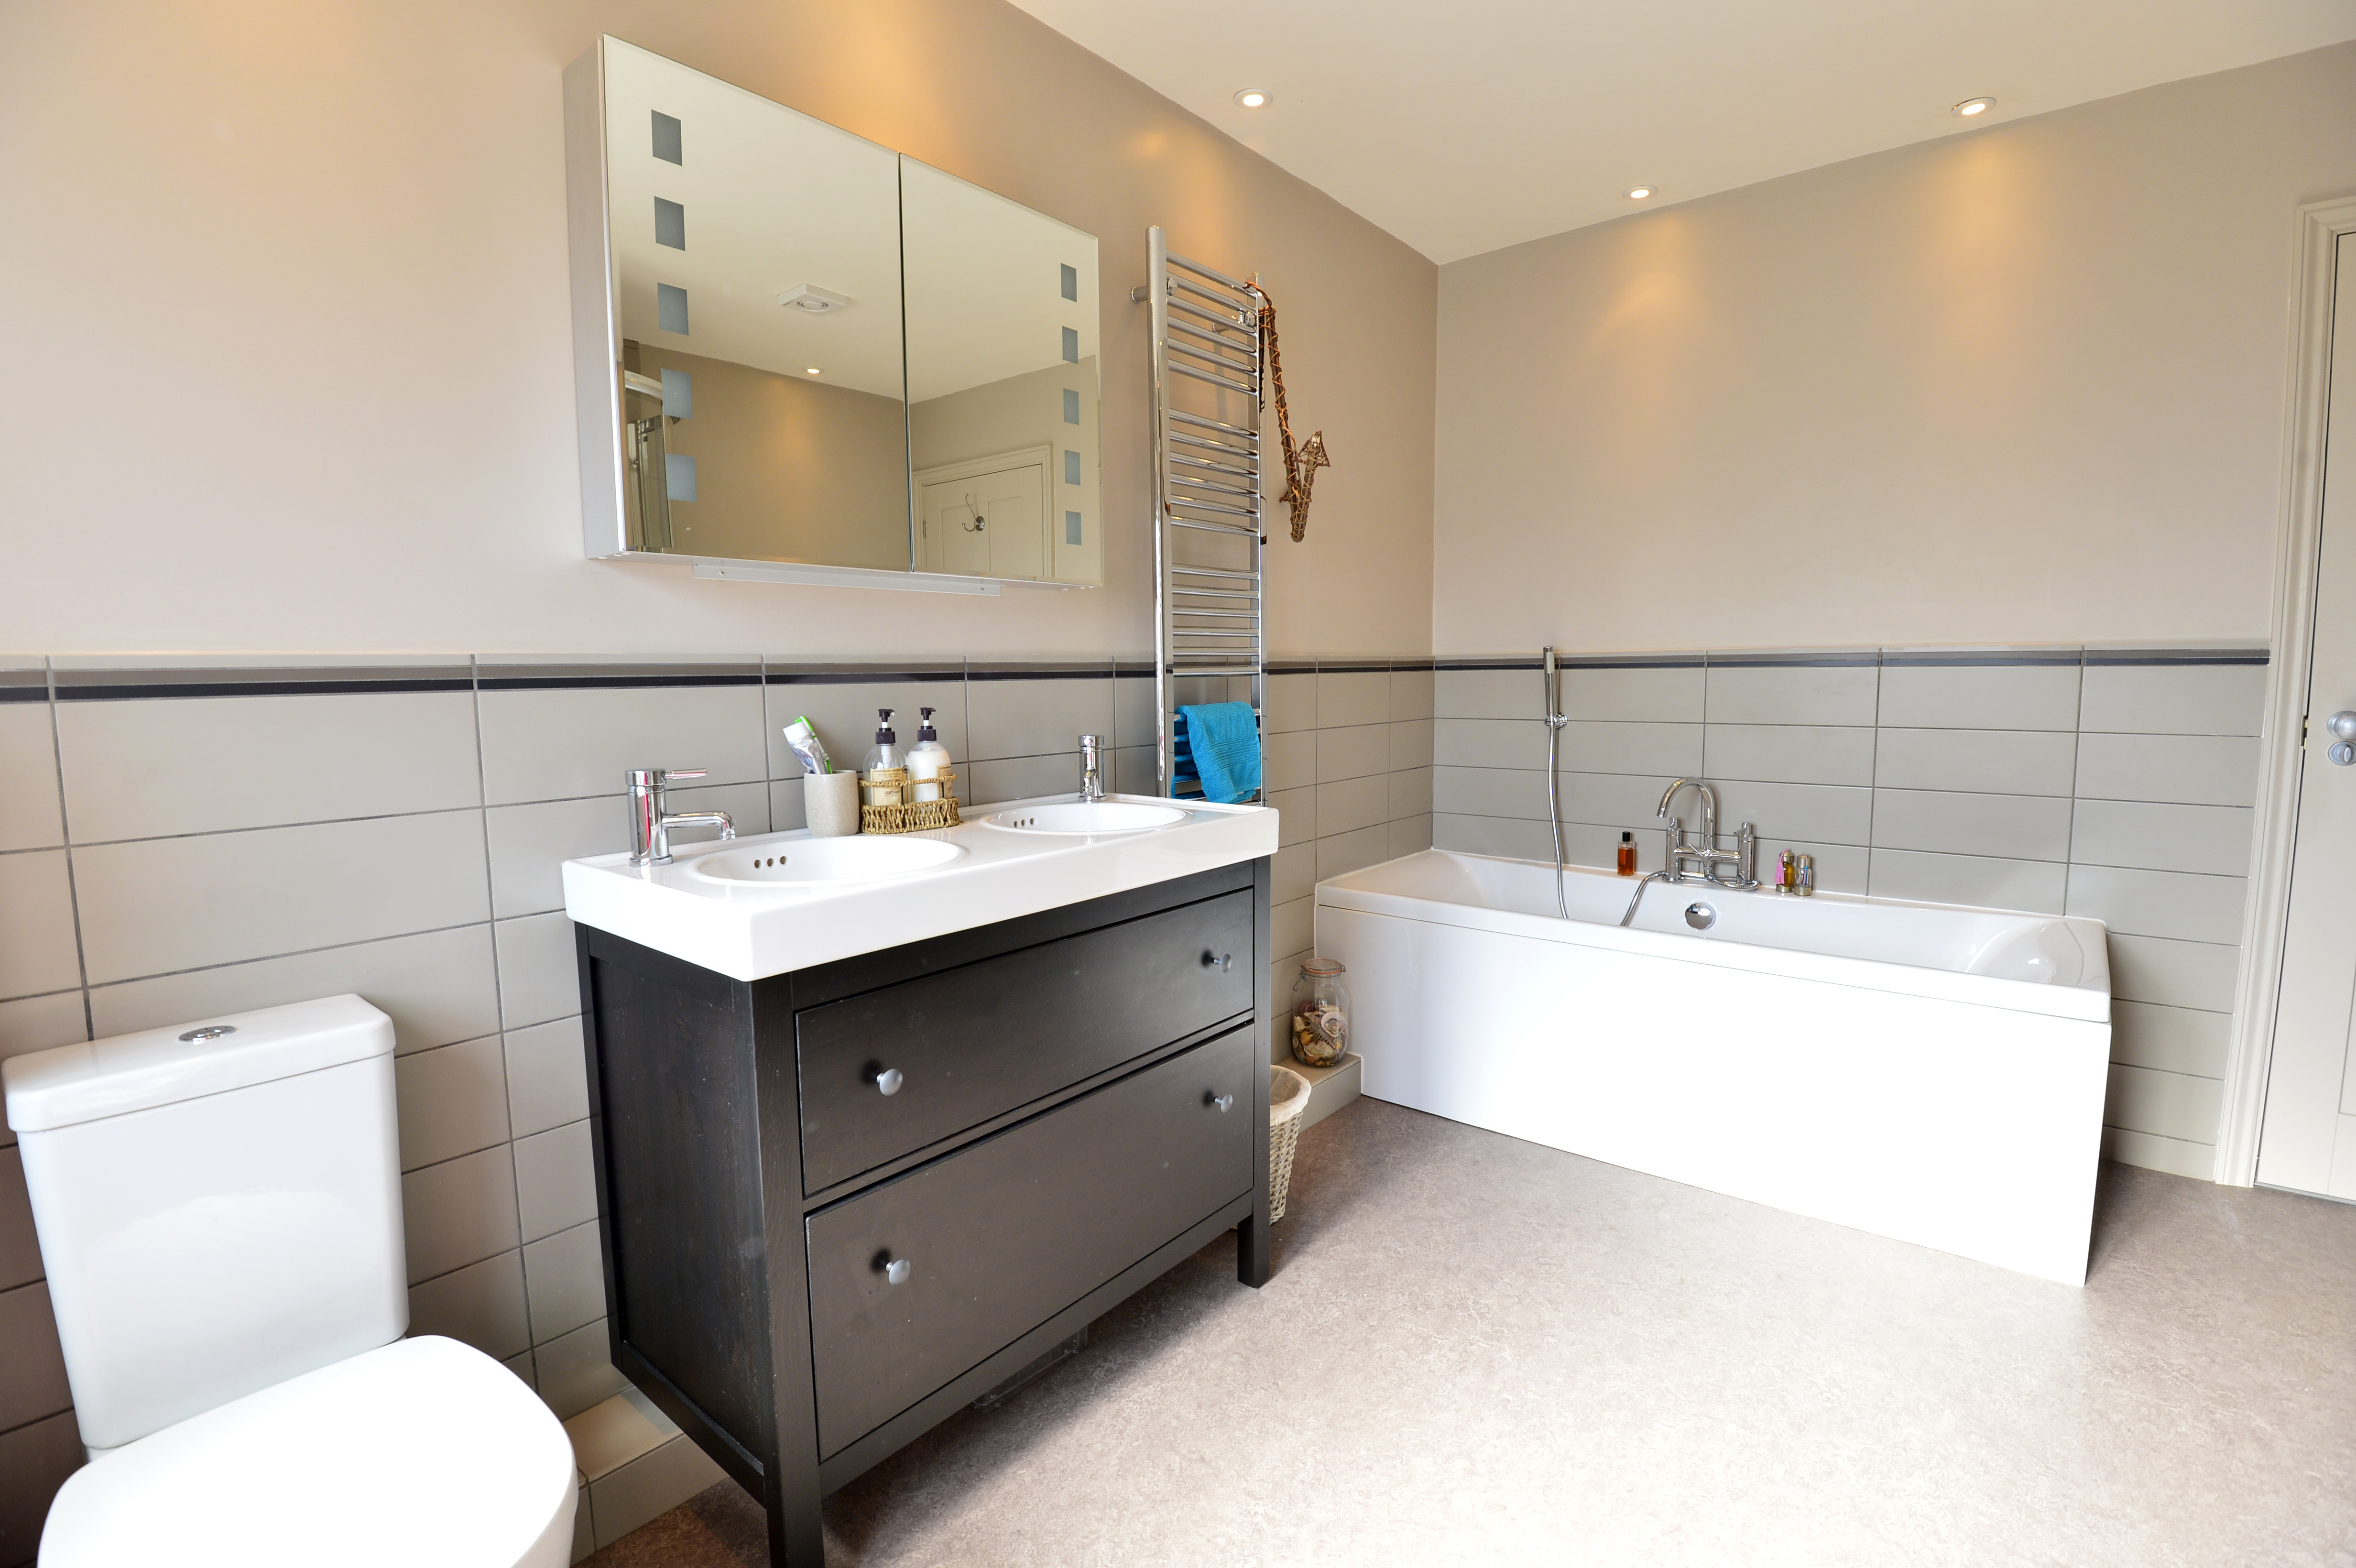 Bathroom Interior Design in Cublington, Buckinghamshire by Sarah Maidment Interiors, Berkhamsted, St. Albans, Hertfordshire